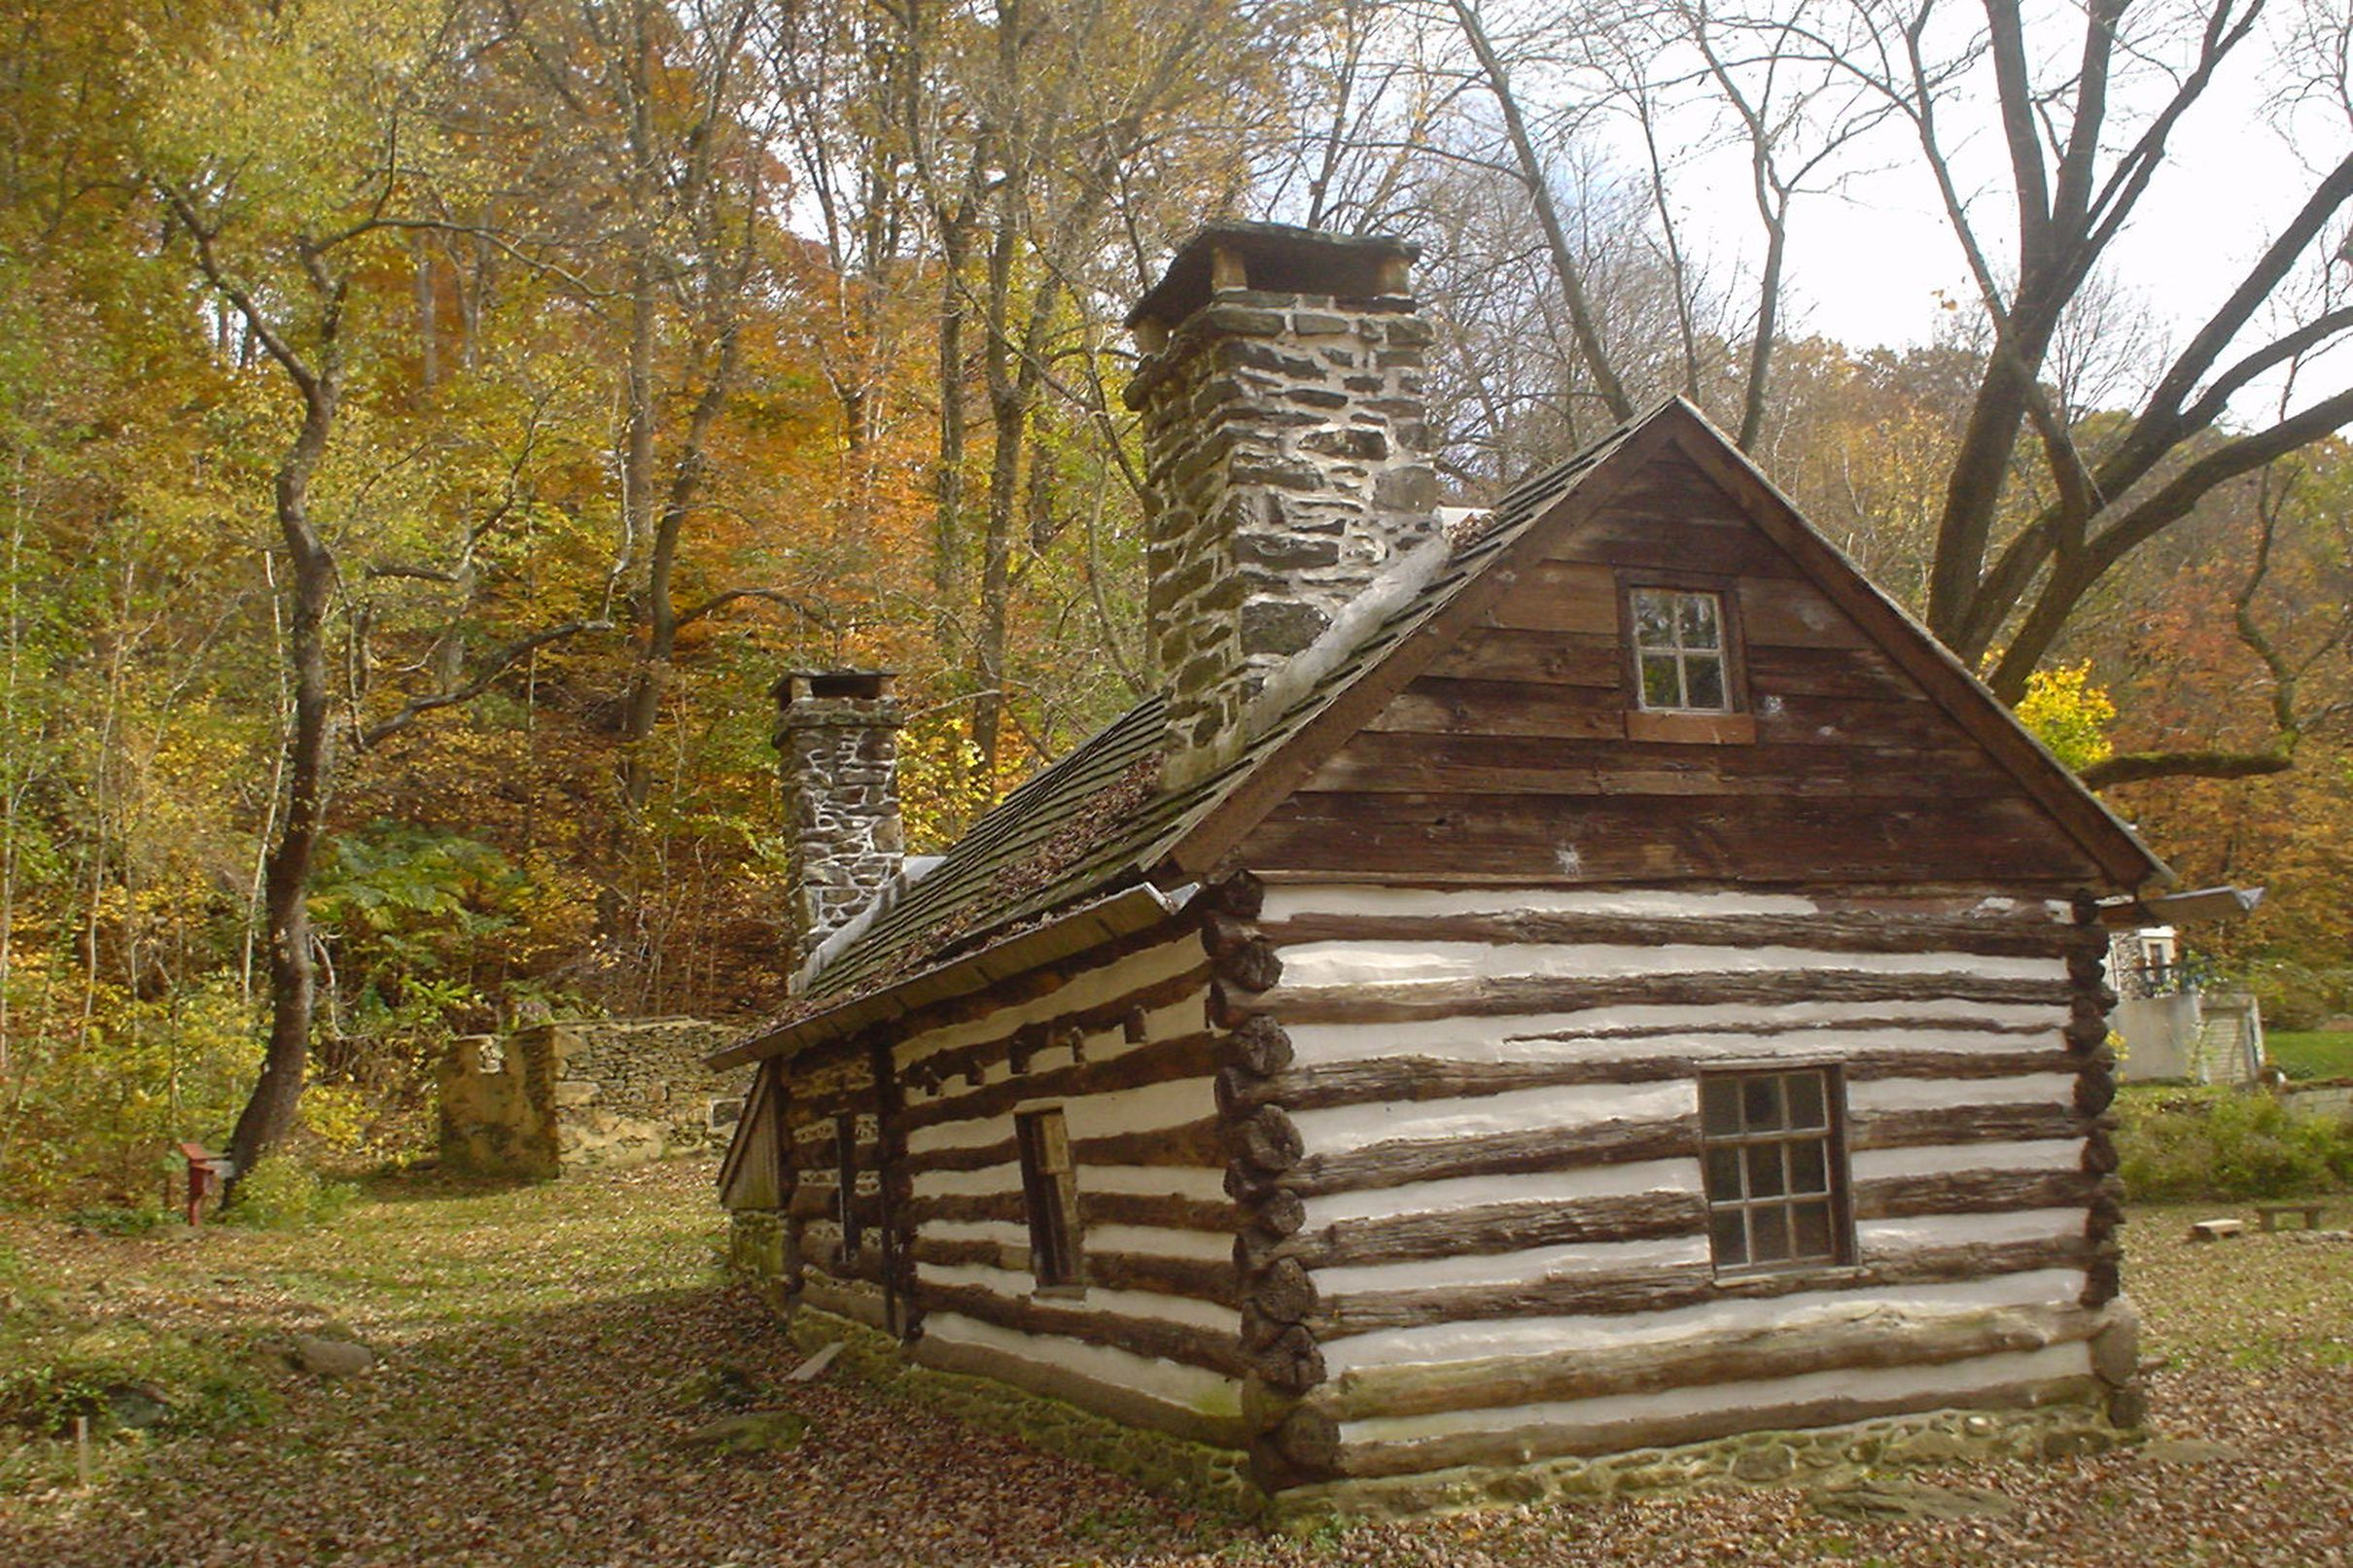 whispering rentals in cabin cook sleeps forest cheap cabins oaks pa